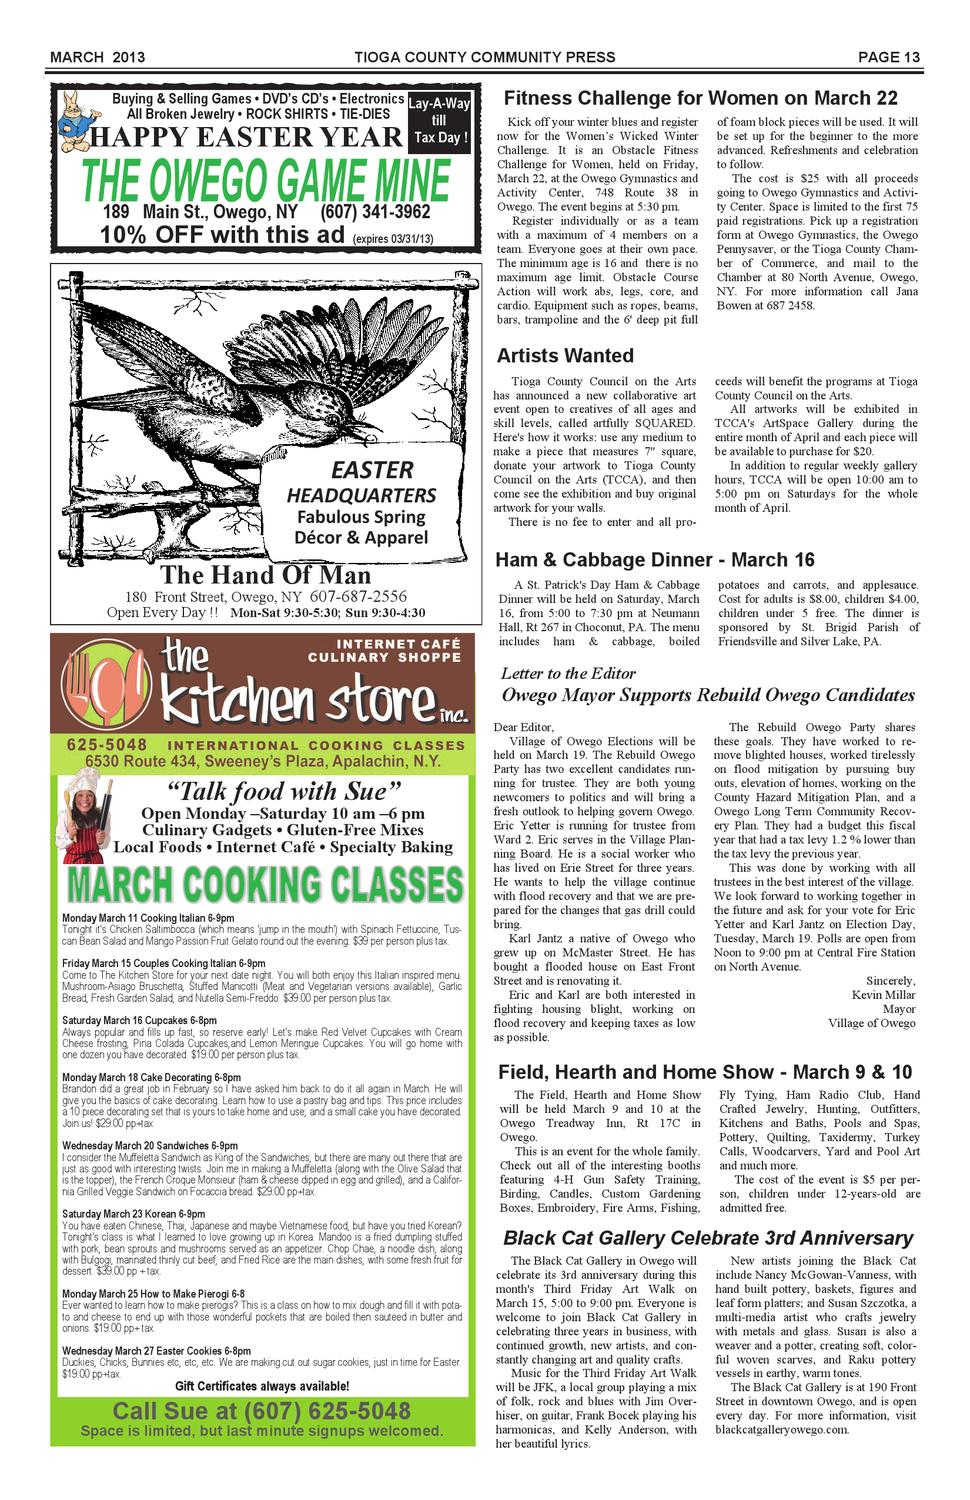 March 2013 Community Press By Fred Brown Issuu